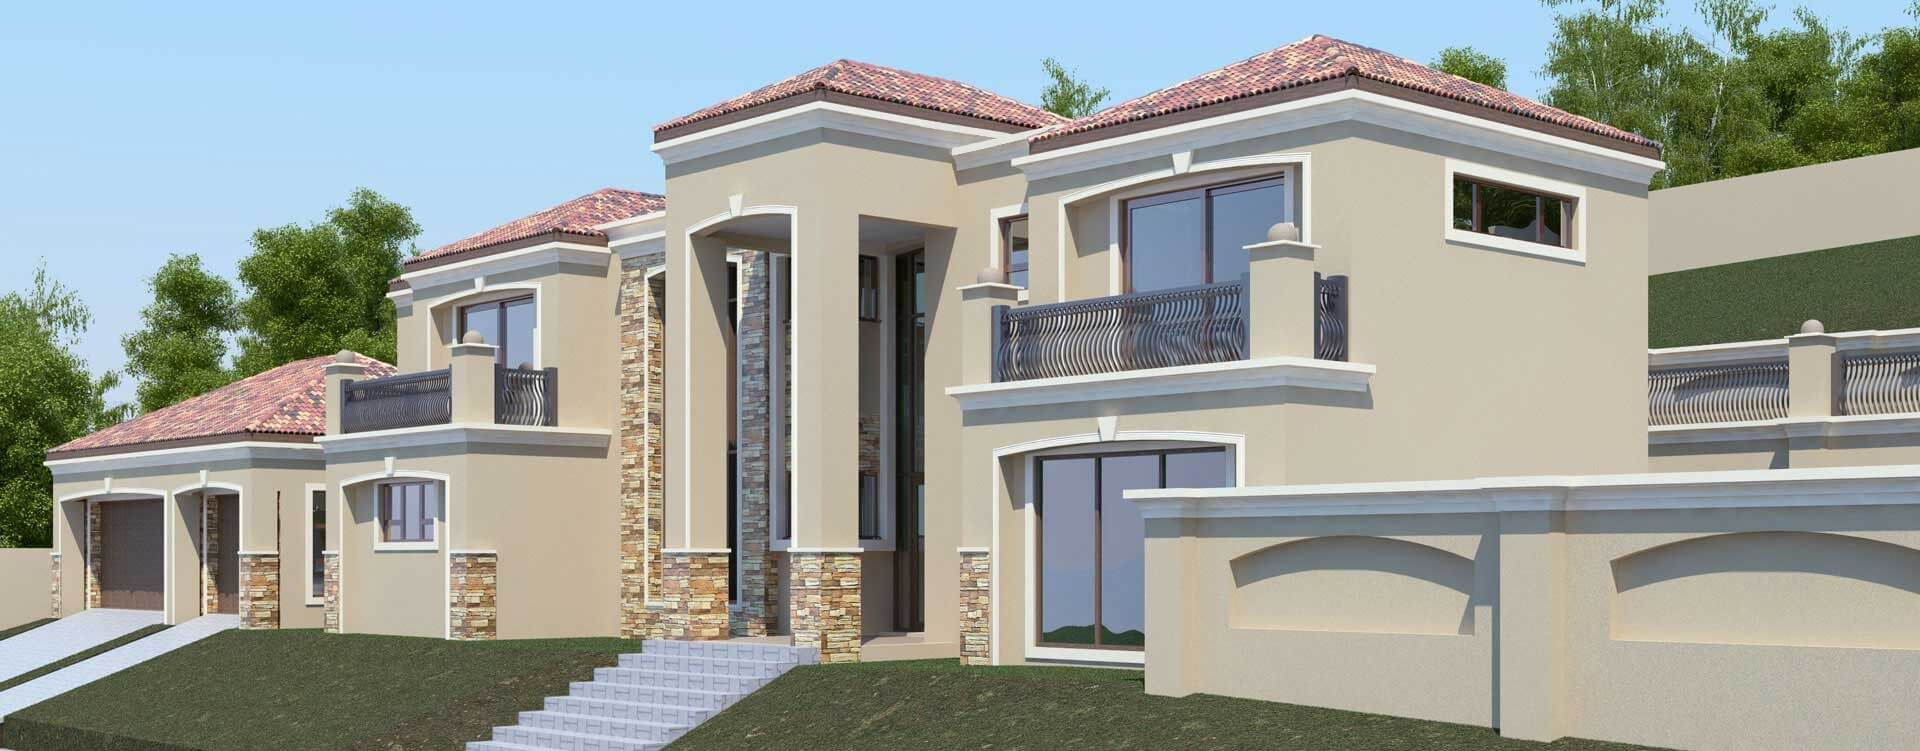 Nethouseplans affordable house plans for Sa home designs